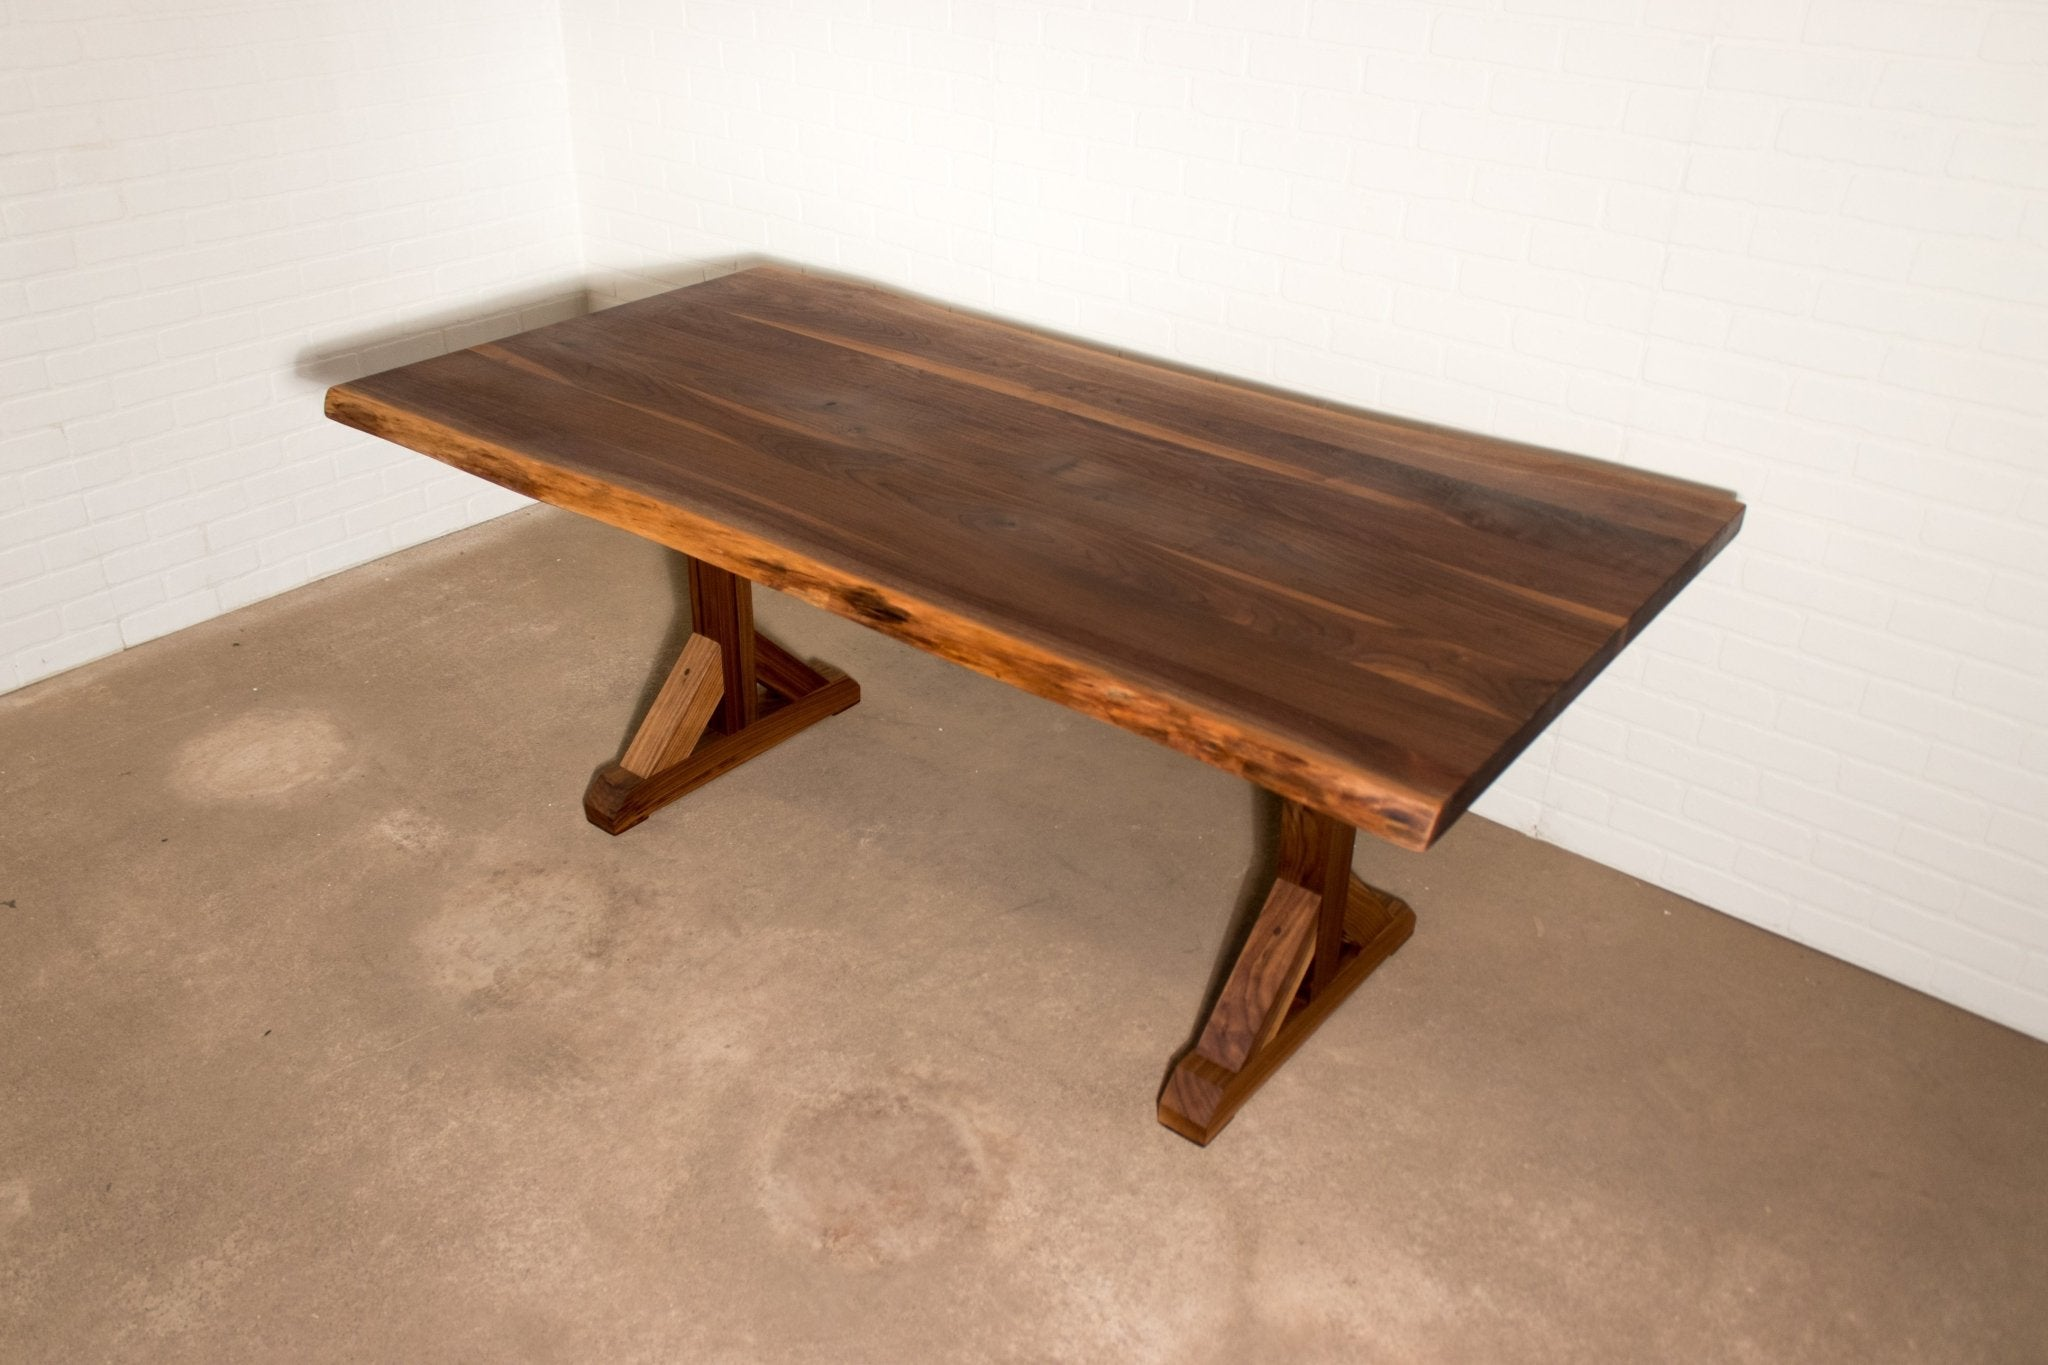 Walnut Farmhouse Dining Table - Loewen Design Studios